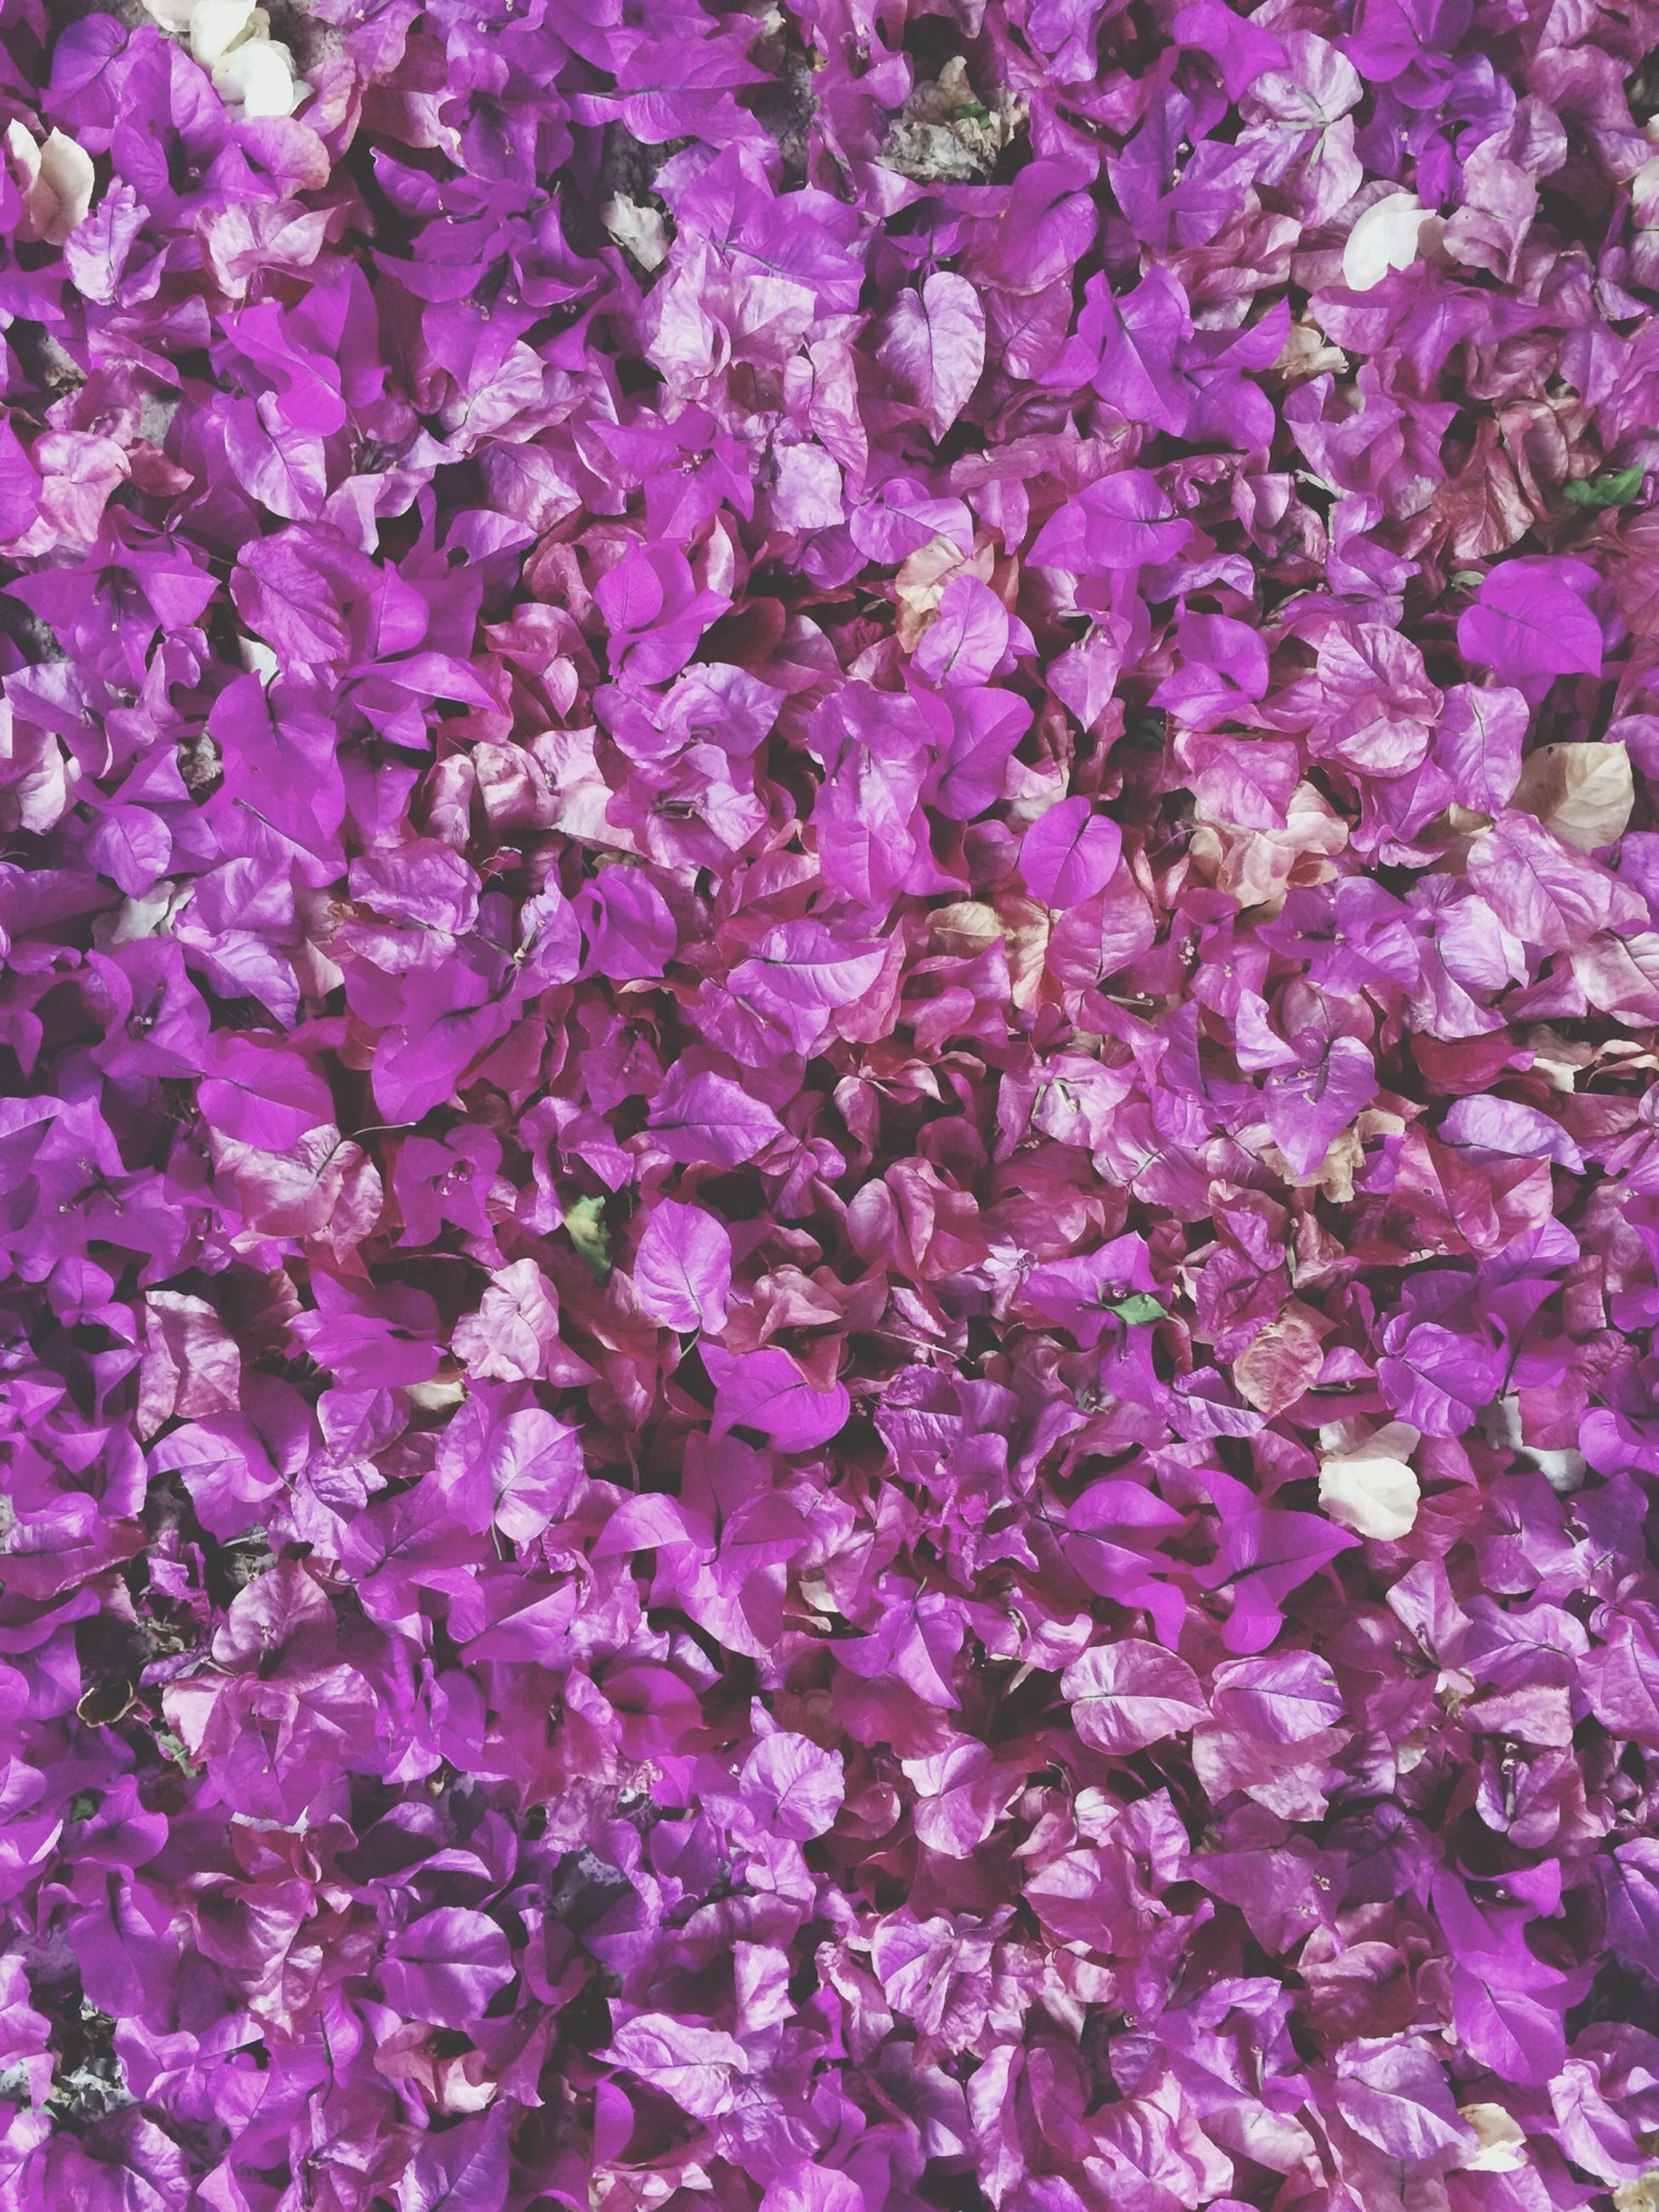 full frame, flower, backgrounds, fragility, freshness, purple, beauty in nature, growth, petal, abundance, nature, high angle view, pink color, plant, blooming, close-up, flower head, no people, outdoors, day